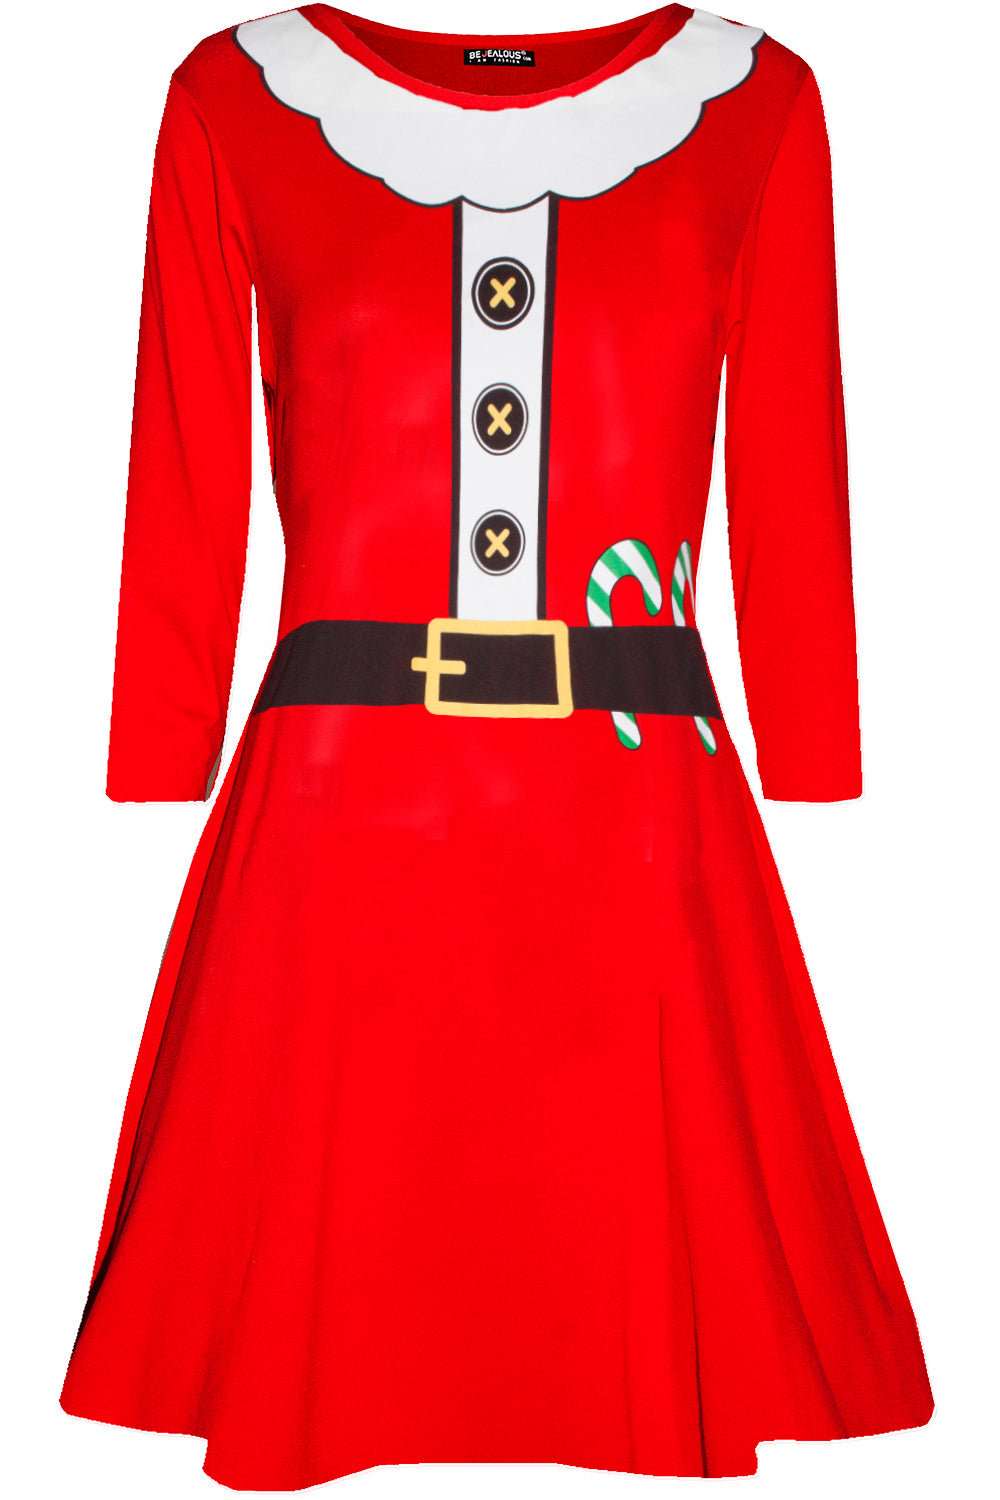 Long Sleeve Santa Costume Mini Dress - bejealous-com